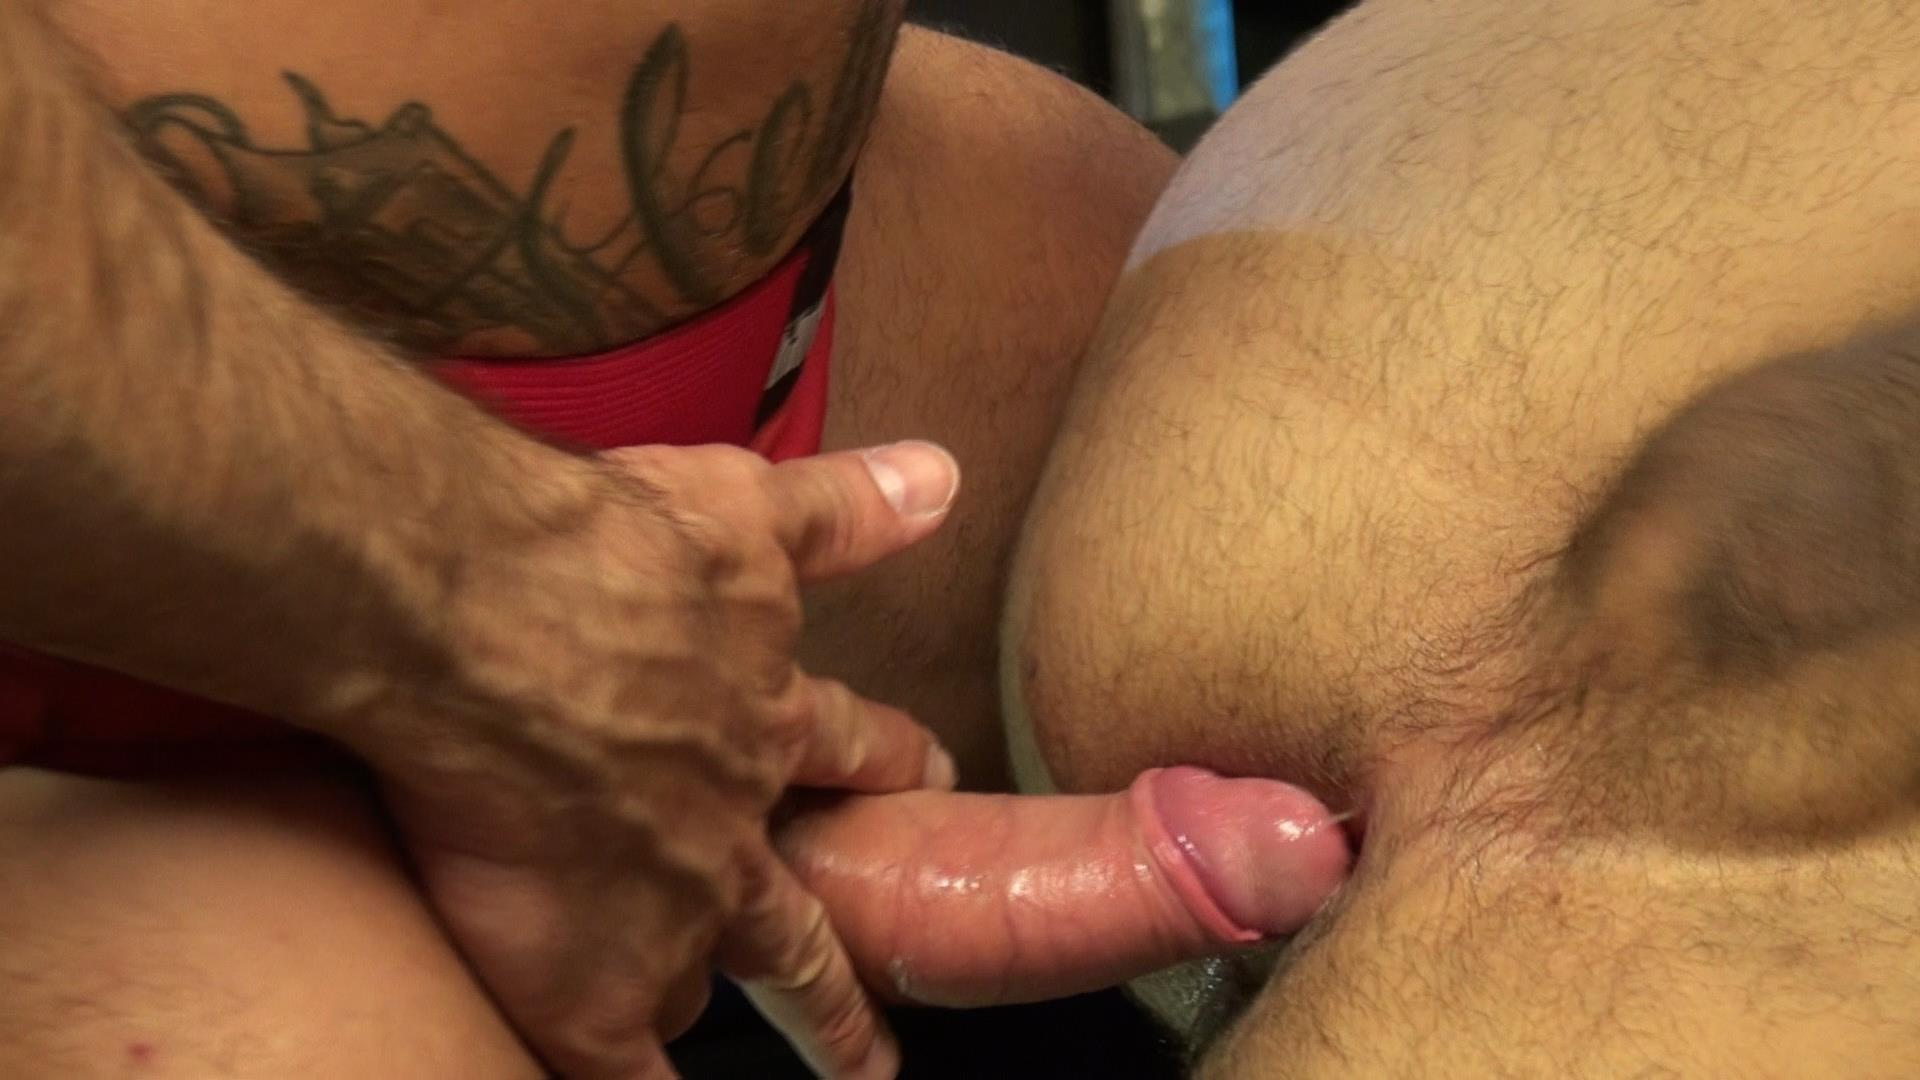 Dark Alley XT Mario Domenech and Antonio Miracle Jocks Bareback Bathhouse Sex Amateur Gay Porn 05 Muscle Jocks Bareback Fucking At A Bathhouse With Their Big Uncut Cocks